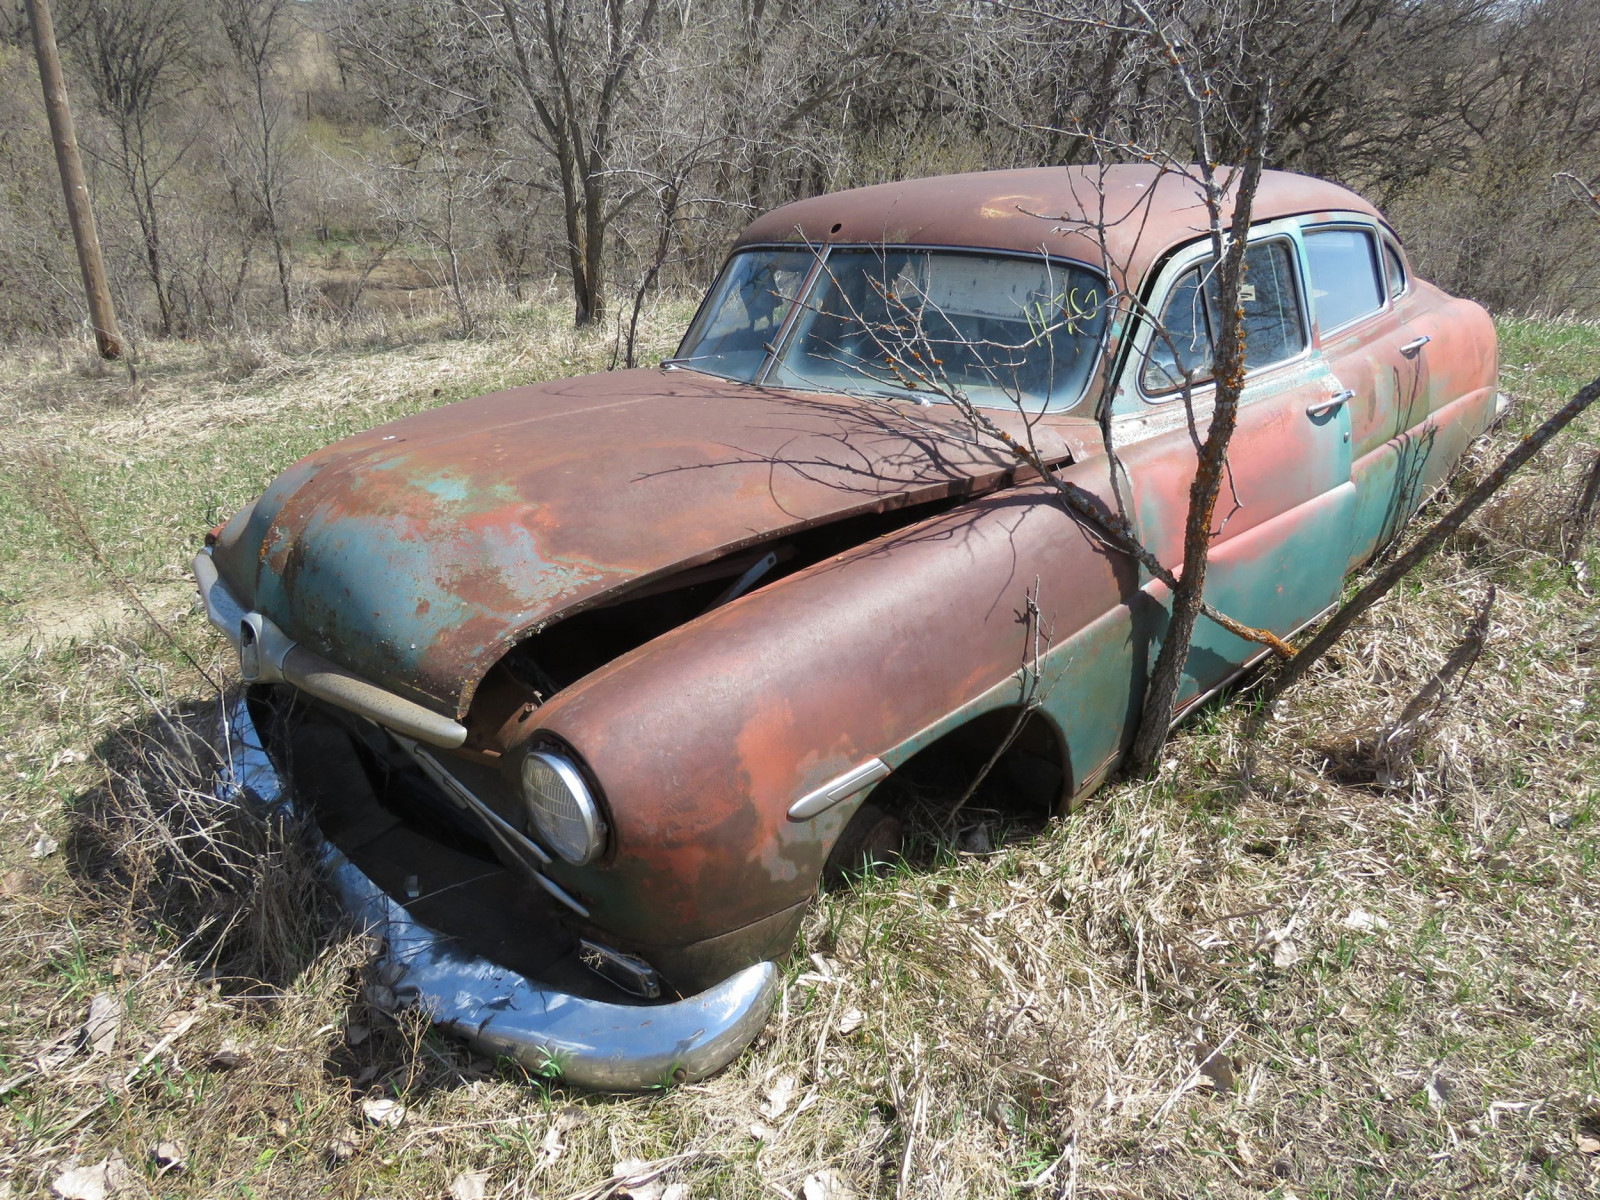 1949/50 Hudson 4dr Sedan for Project or Parts - Image 1